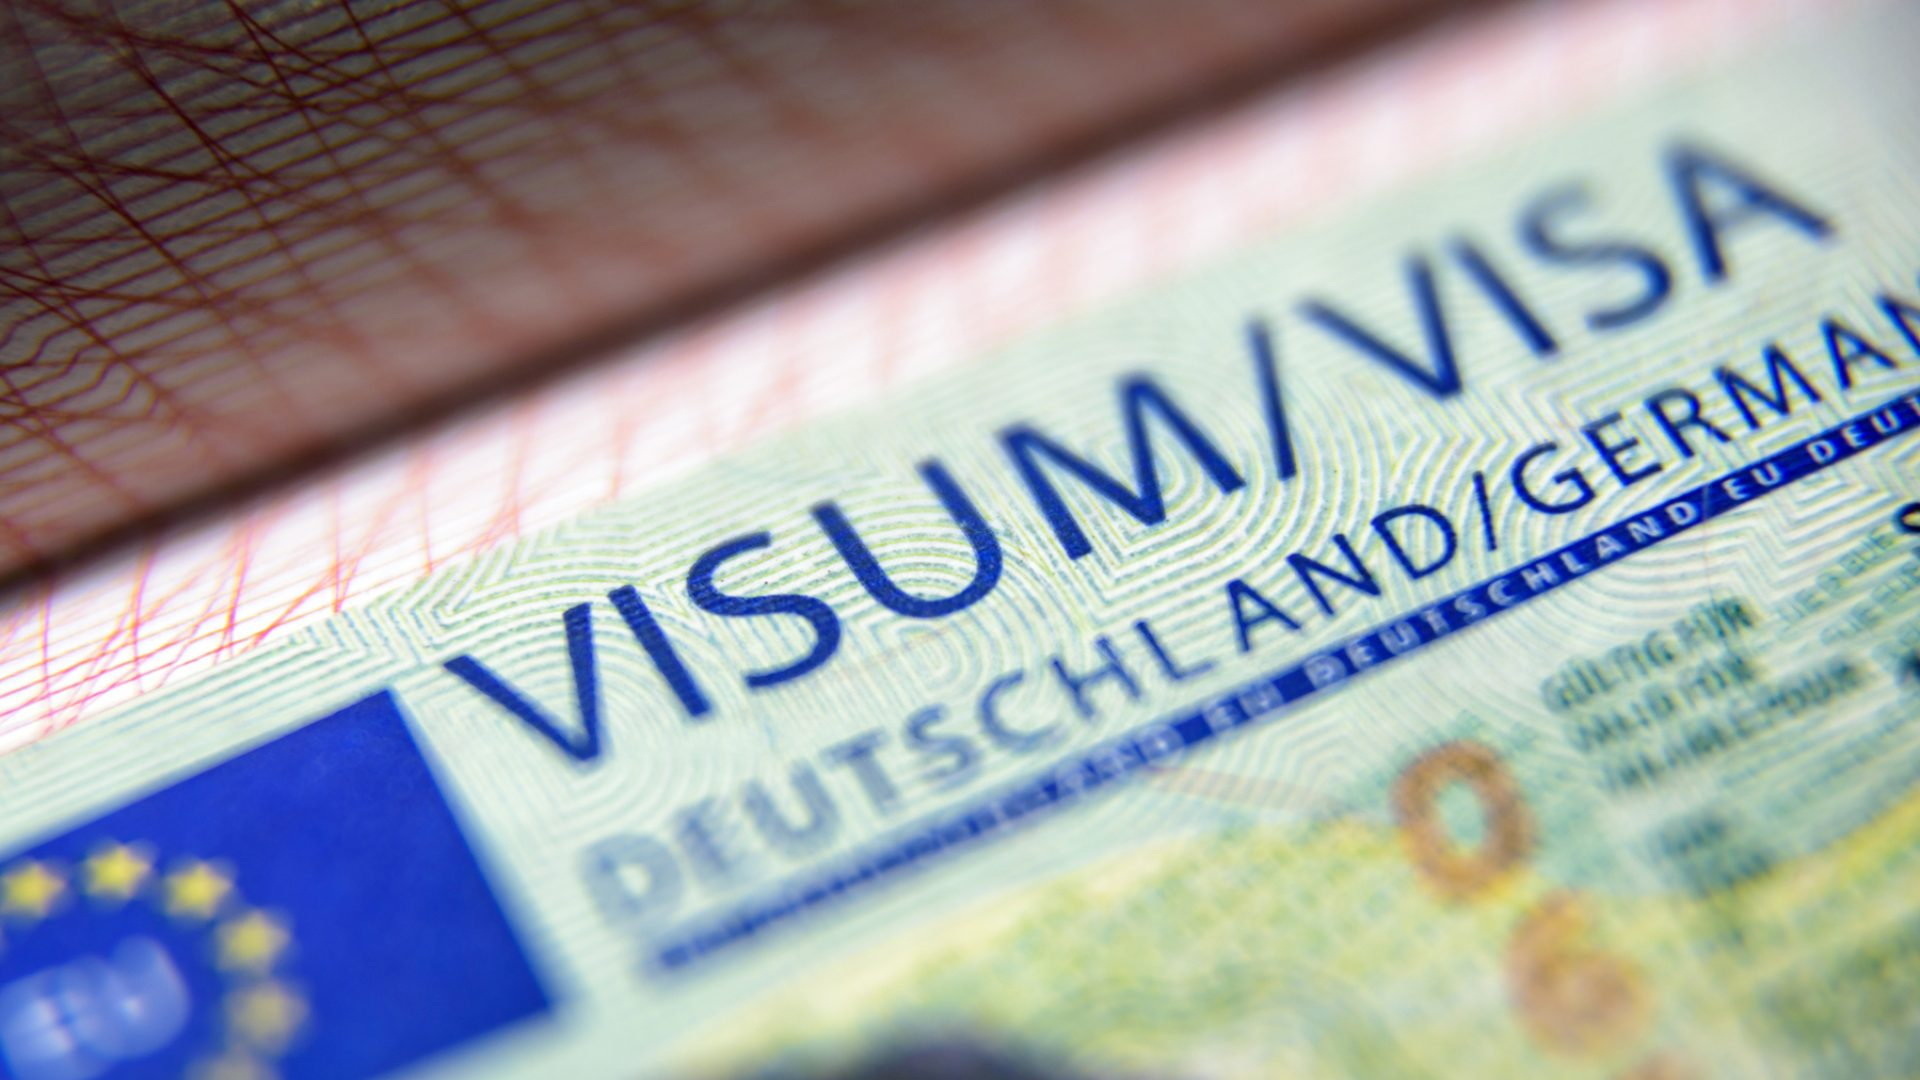 Visas and immigration in Germany